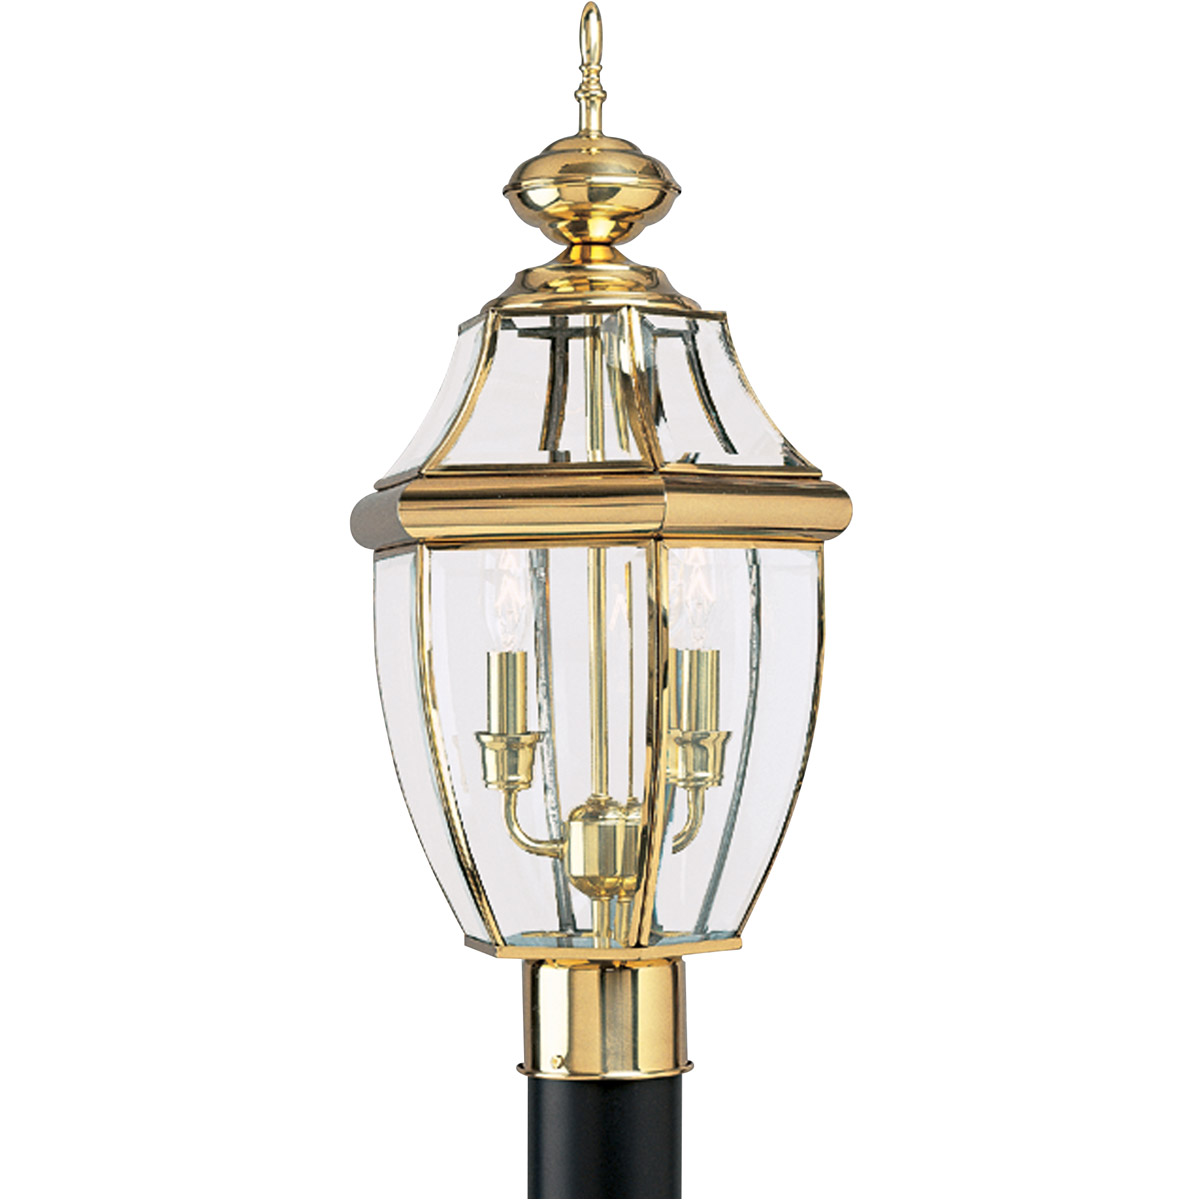 Sea Gull Lighting Lancaster 2 Light Outdoor Post Lantern in Polished Brass 8229-02 photo